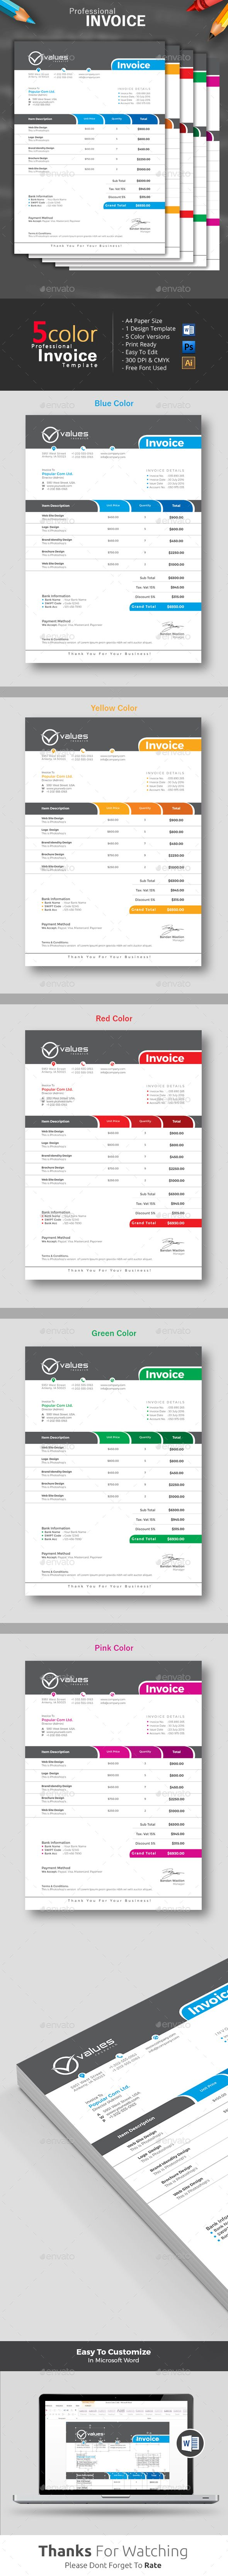 #Invoice - Proposals & Invoices Stationery Download here: https://graphicriver.net/item/invoice/17250750?ref=classicdesignp